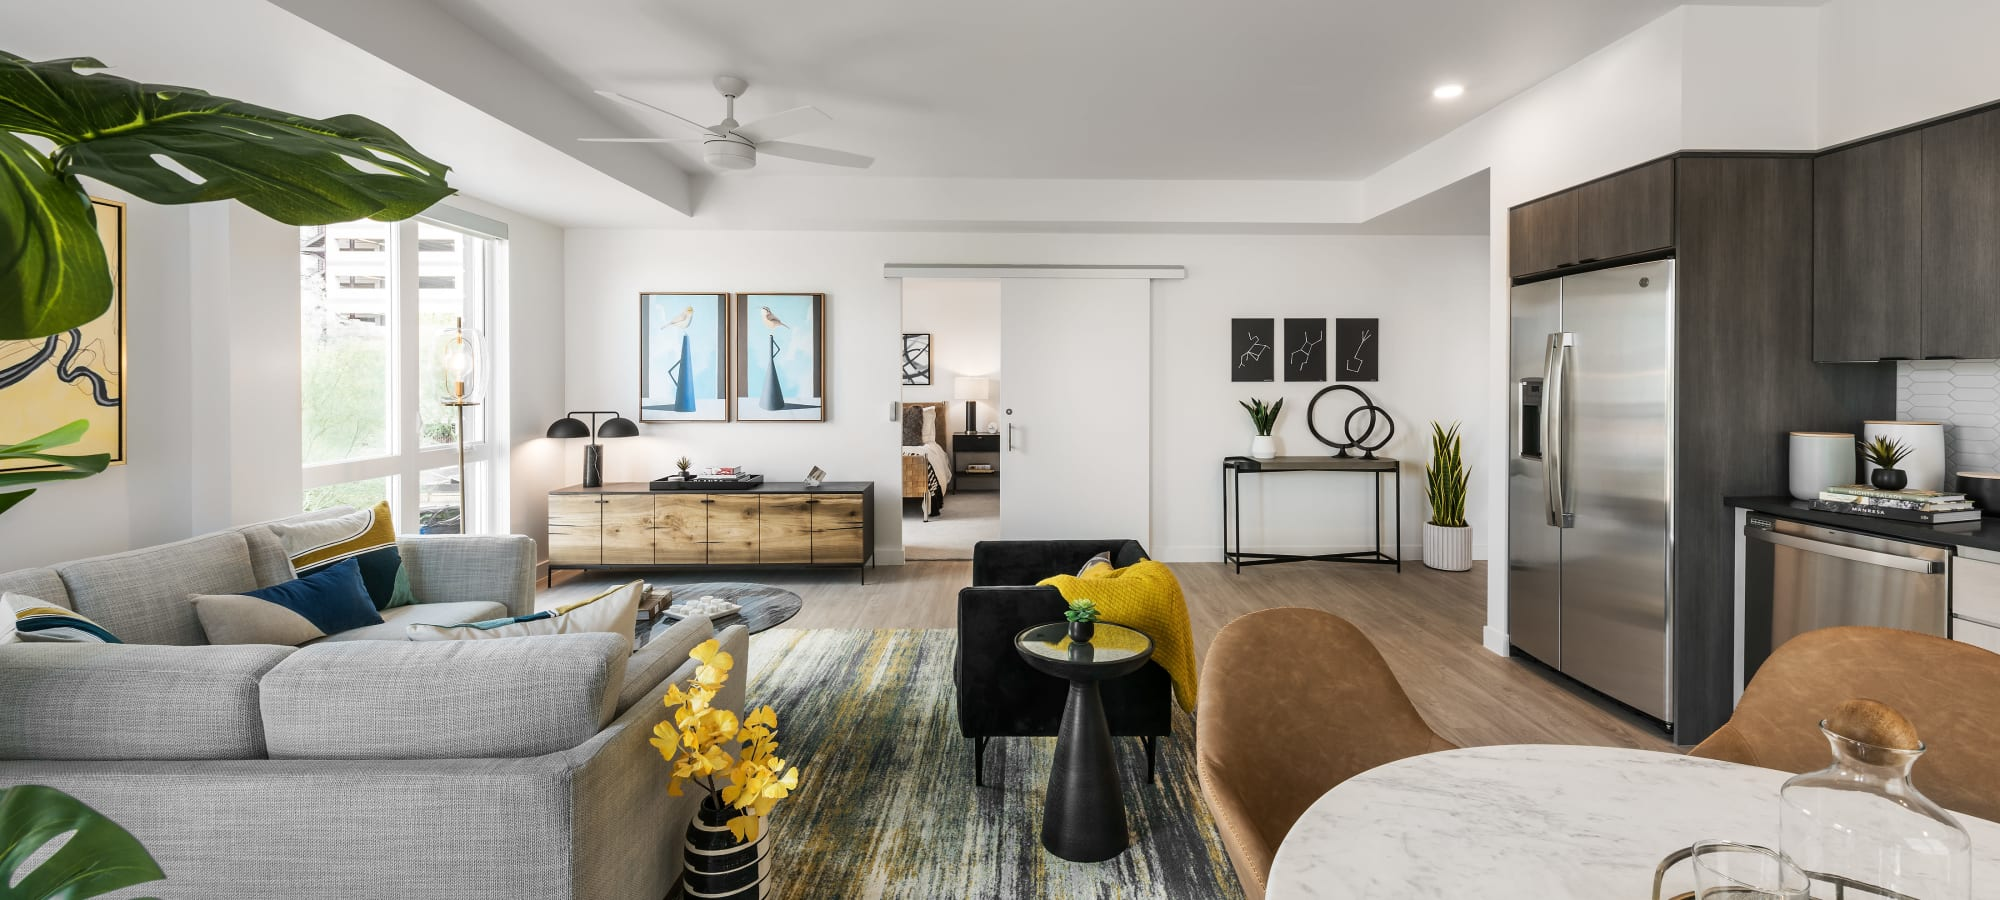 View from Living Room to Bedroom entrance at Hudson on Farmer in Tempe, Arizona